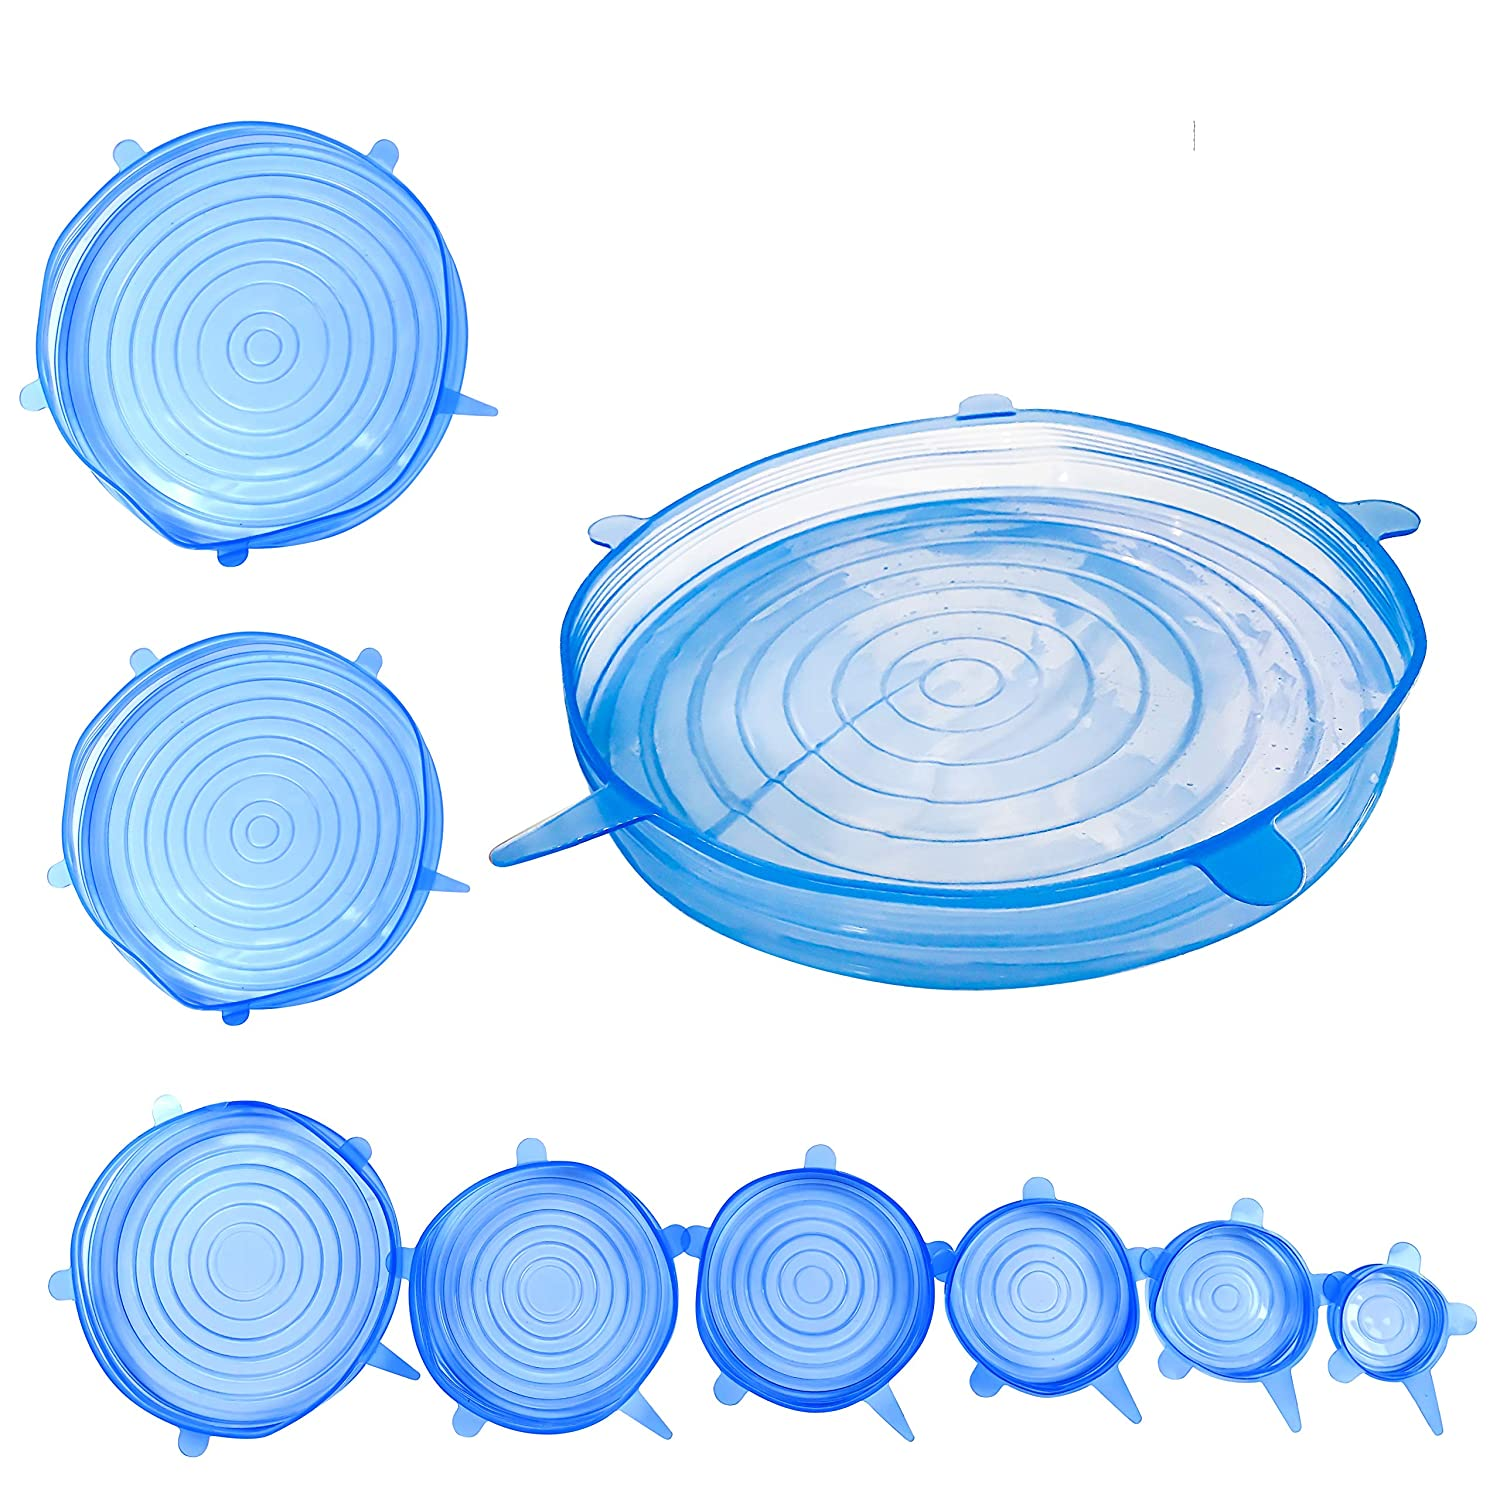 blue. pans pots vegetables /& fruit For cans Eco-friendly reusable alternative to cling film bowls Set of 8/Nefas stretch silicone airtight lid